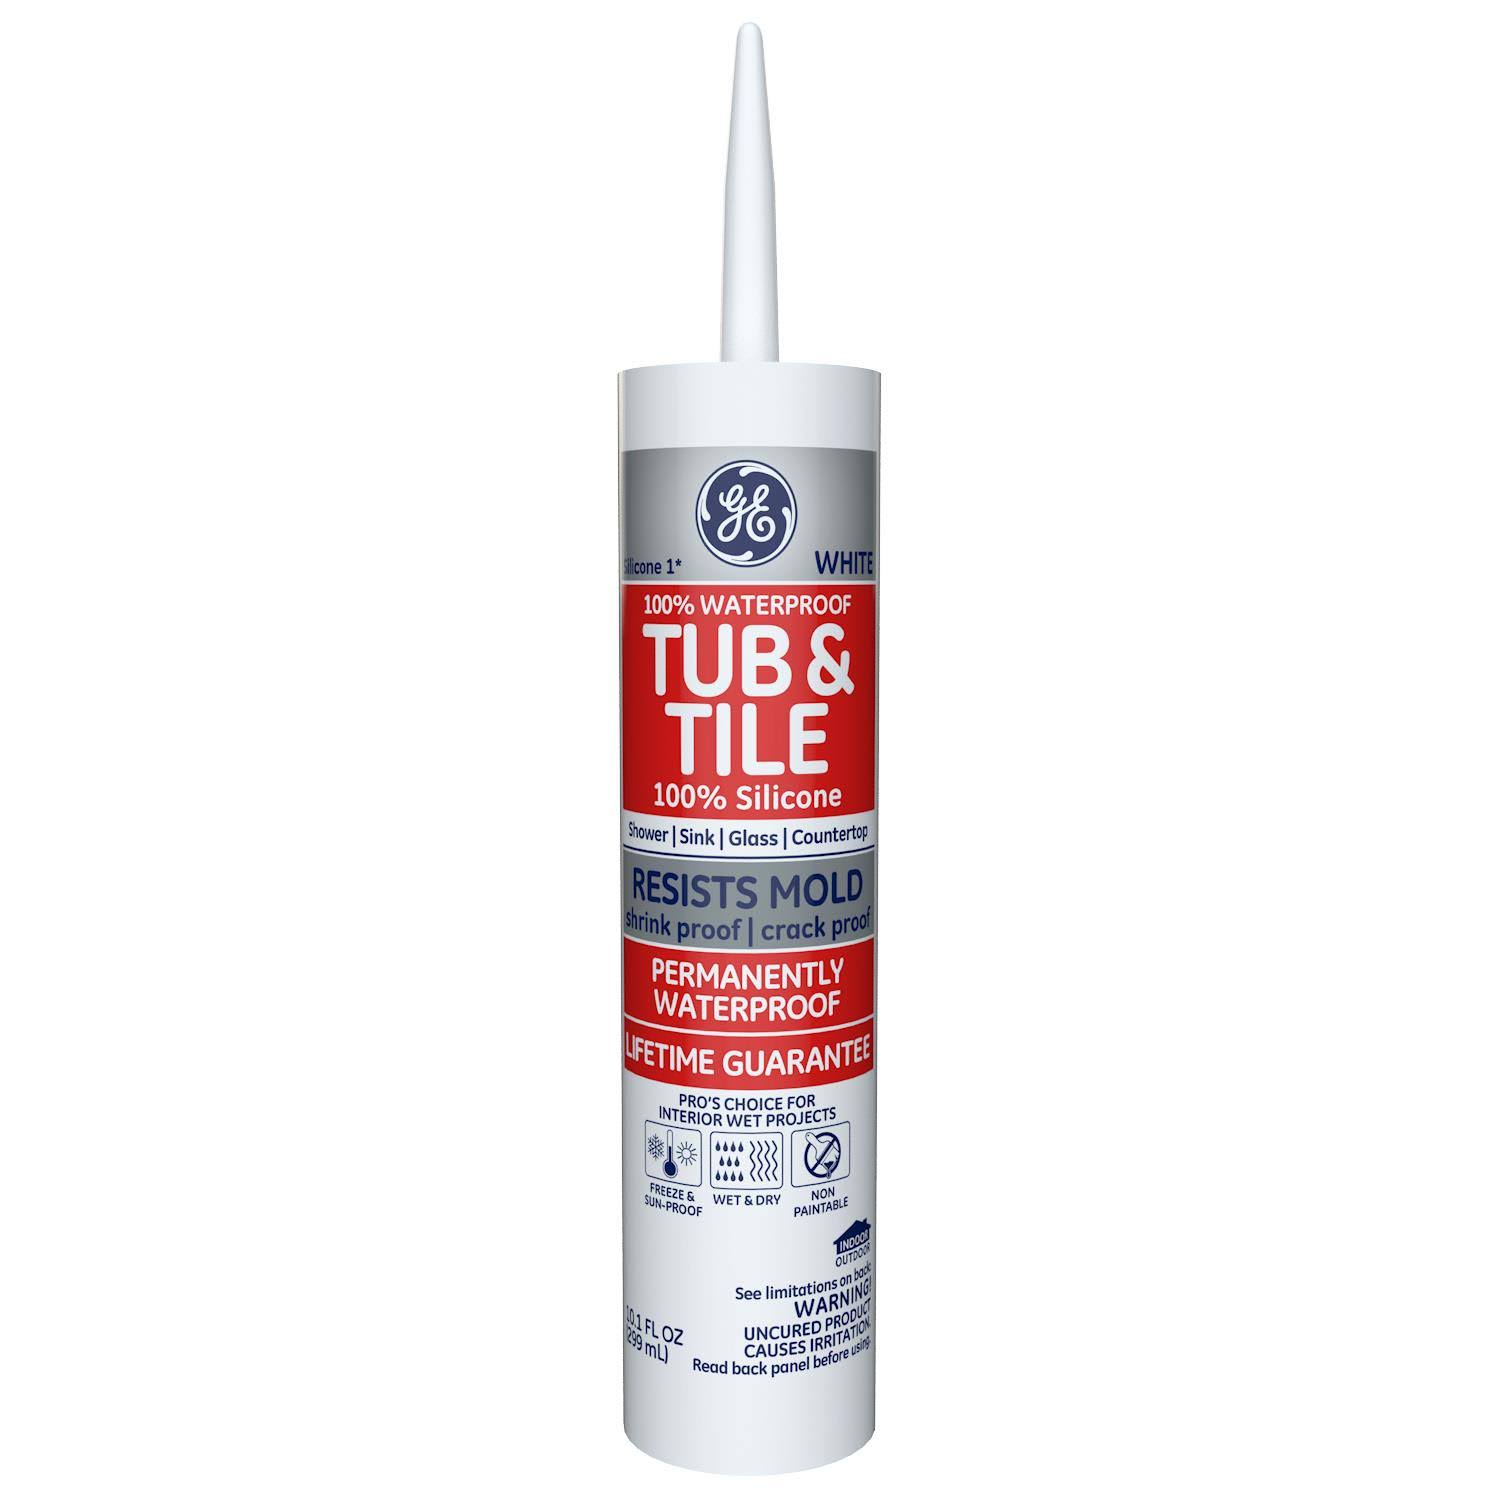 GE Tub & Tile Silicone Kitchen & Bath Caulk - White, 10.1 oz